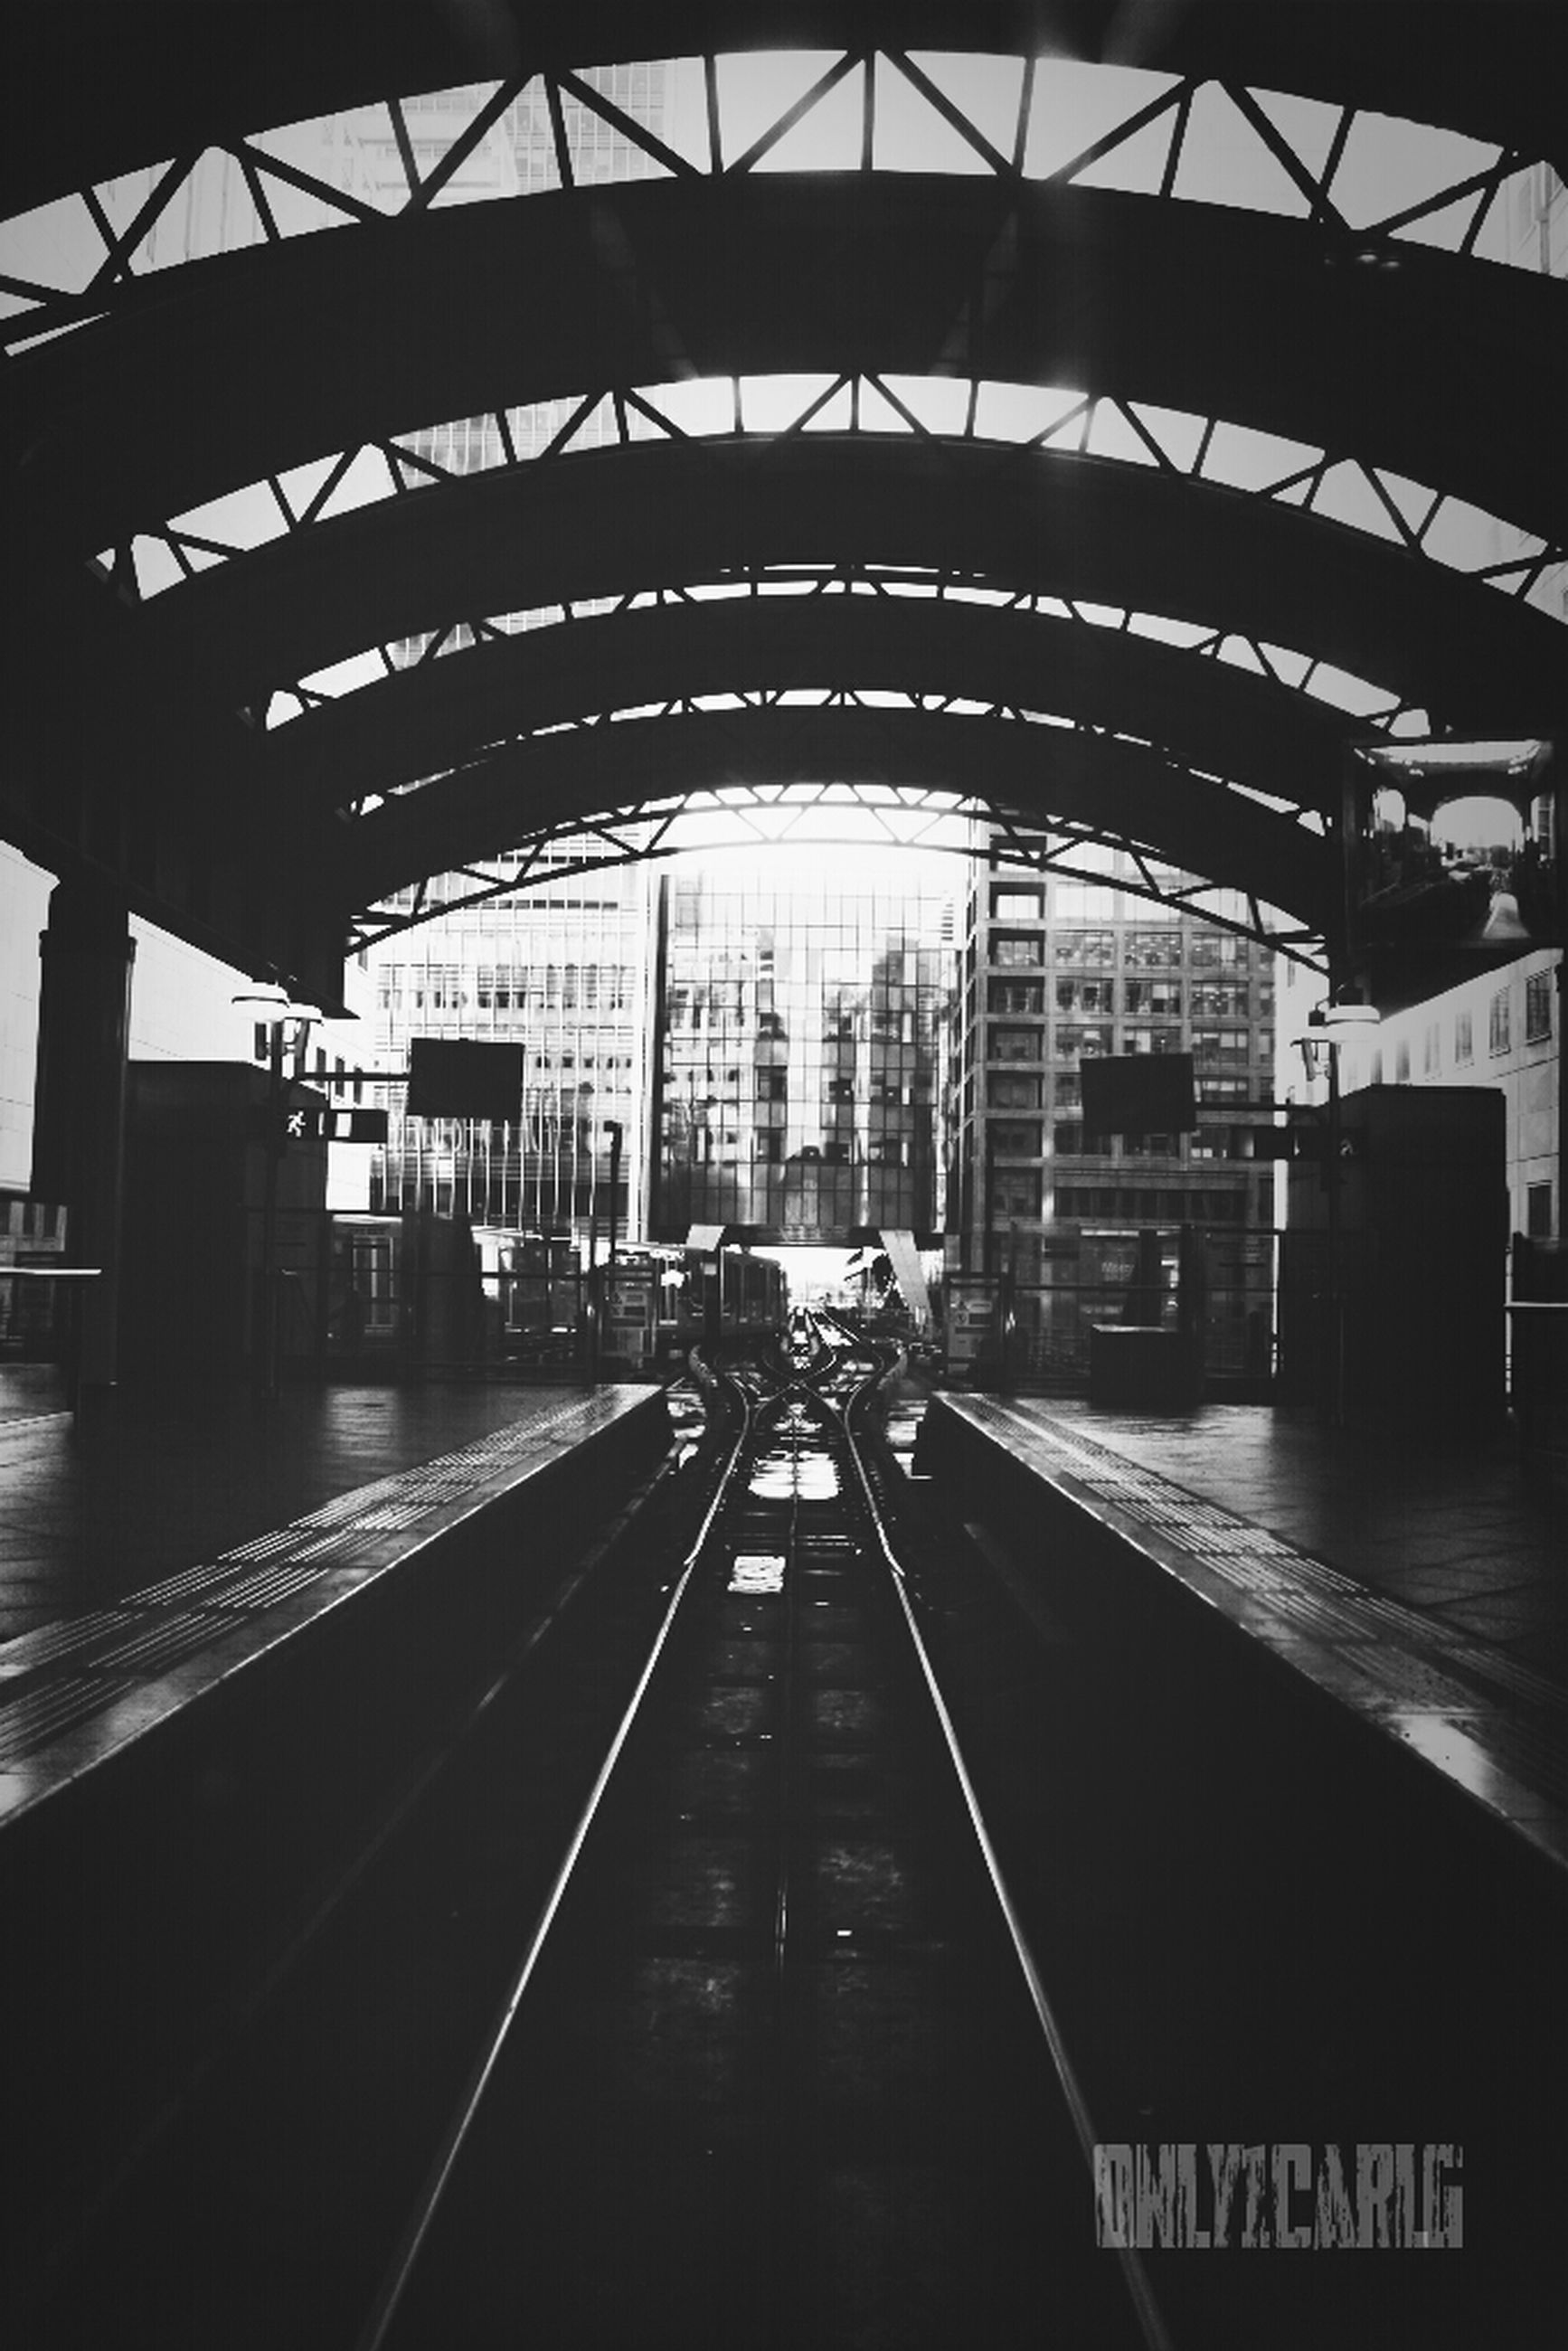 architecture, transportation, built structure, indoors, railroad station, railroad station platform, rail transportation, public transportation, railroad track, the way forward, diminishing perspective, incidental people, empty, ceiling, city, travel, vanishing point, building exterior, city life, transportation building - type of building